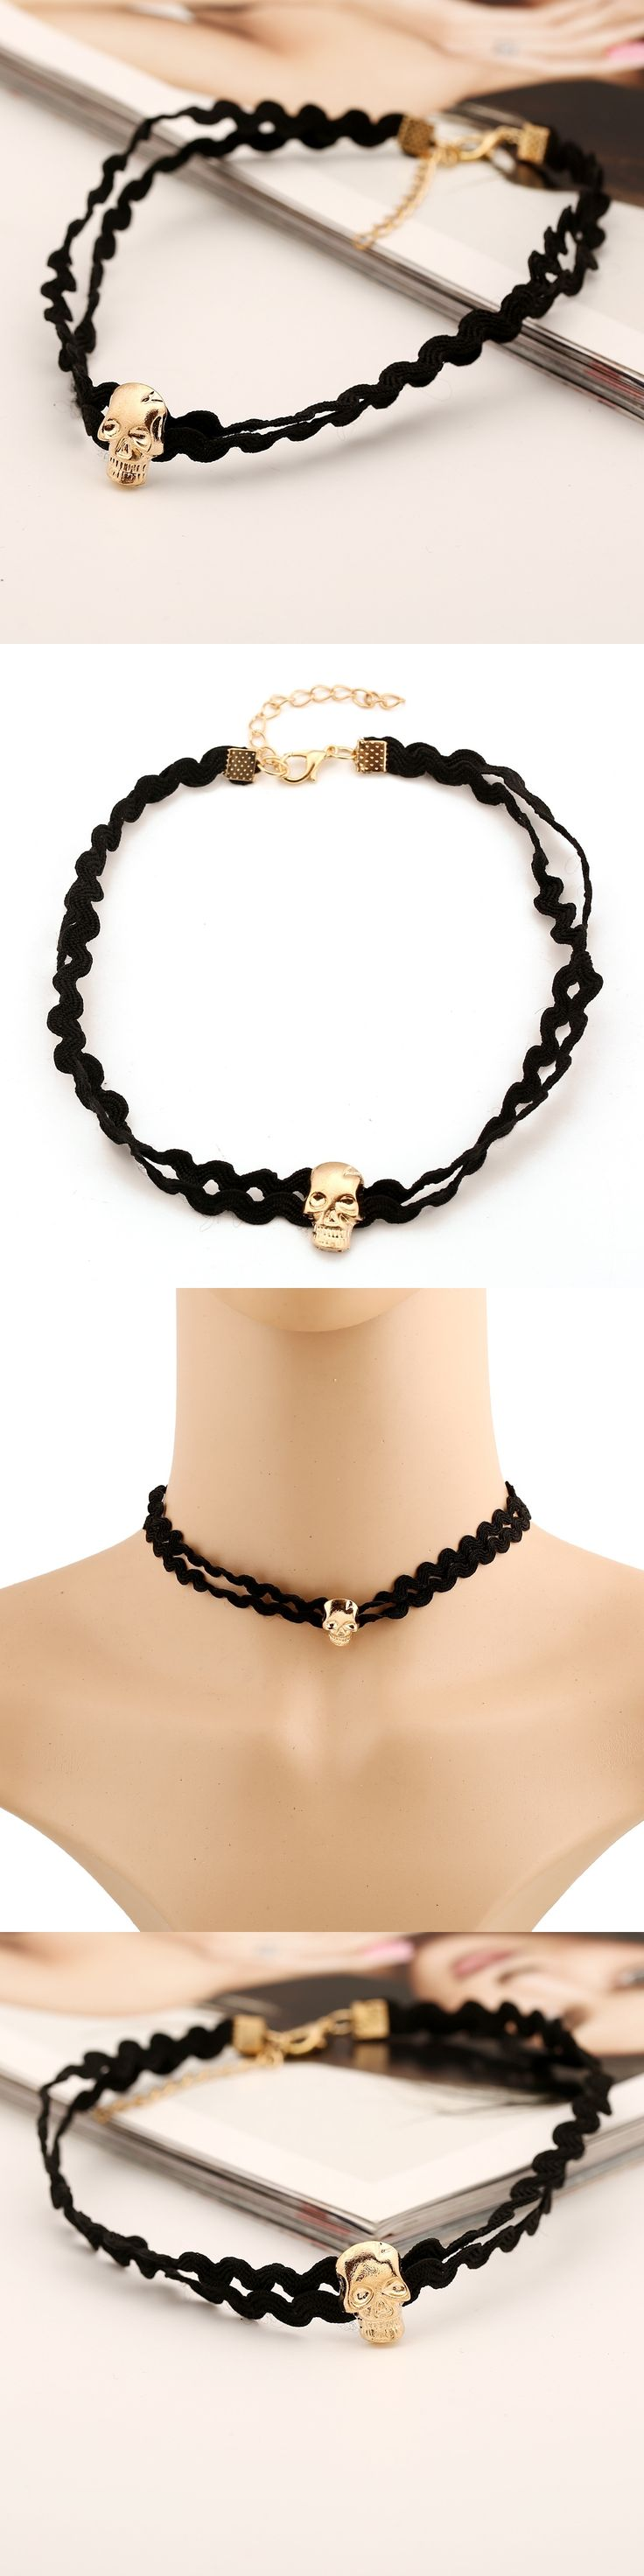 Necklace Lace Skull Head and Neck Chain Clavicle Short Chain Necklace LY X505